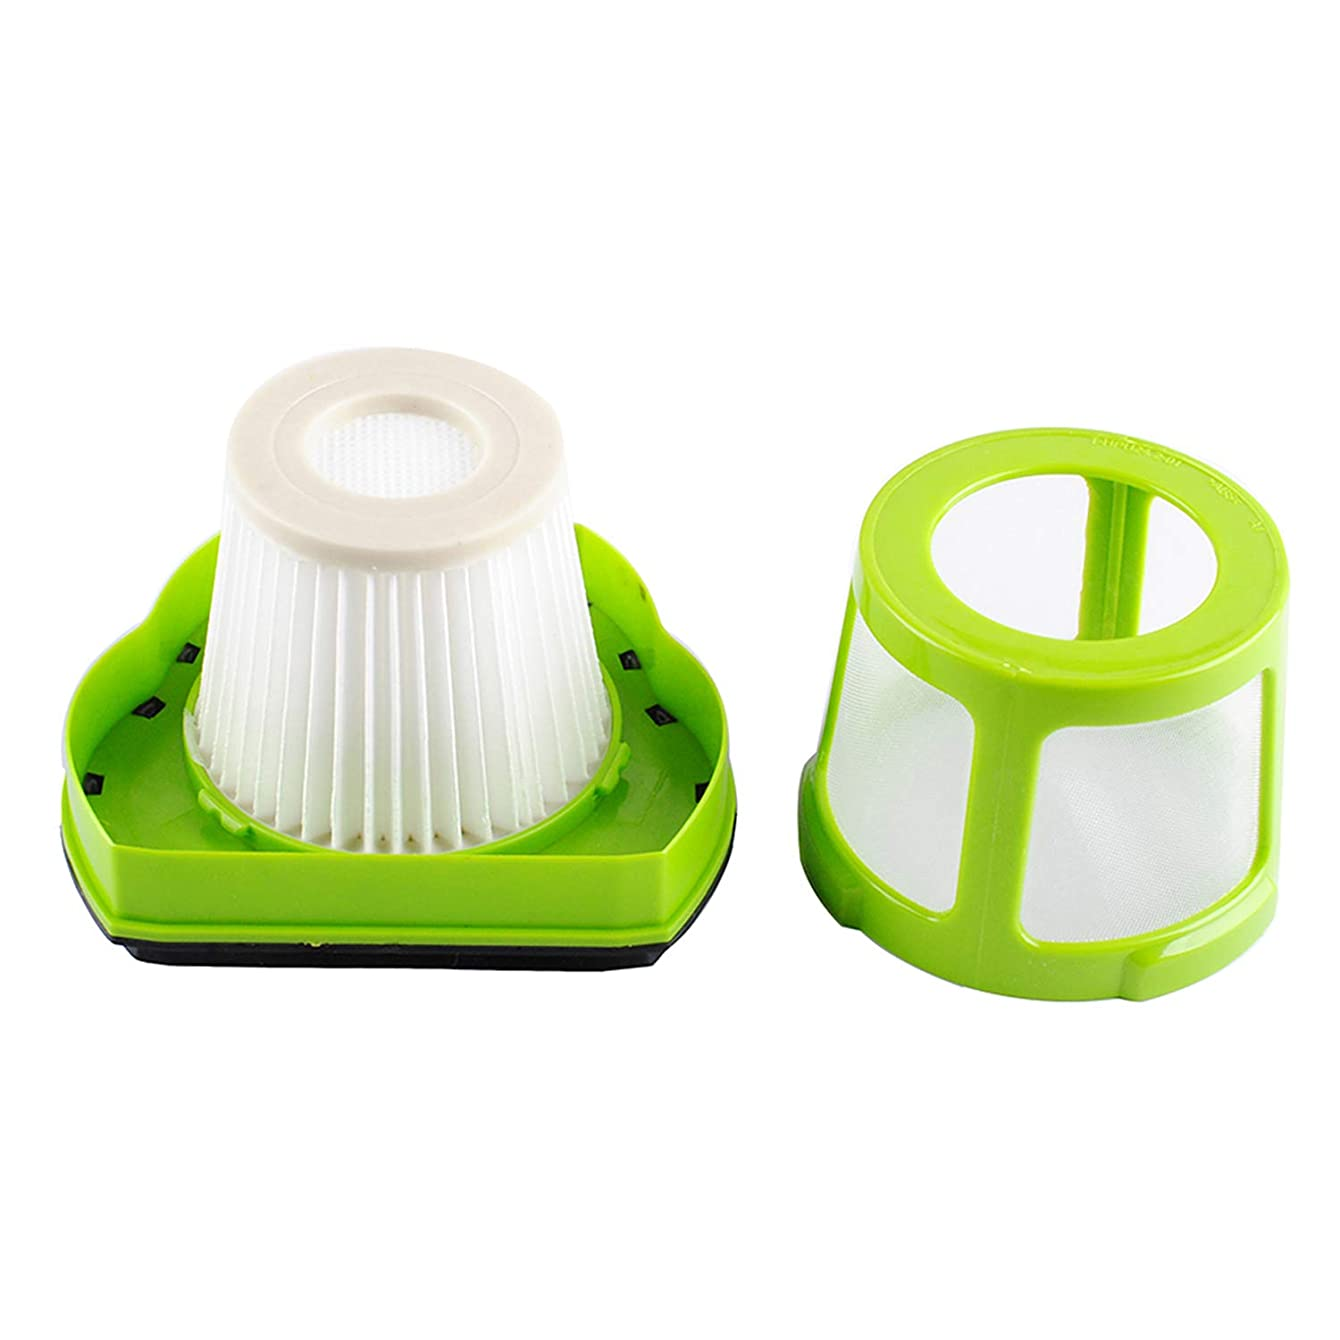 Poweka 1608653 Pet Hair Eraser Handheld Vacuum Filter for Bissell, and 1608654 Mesh Frame Pet Hair Eraser Cordless Handheld Vacuum Filter Replace 1782 17823 Filter